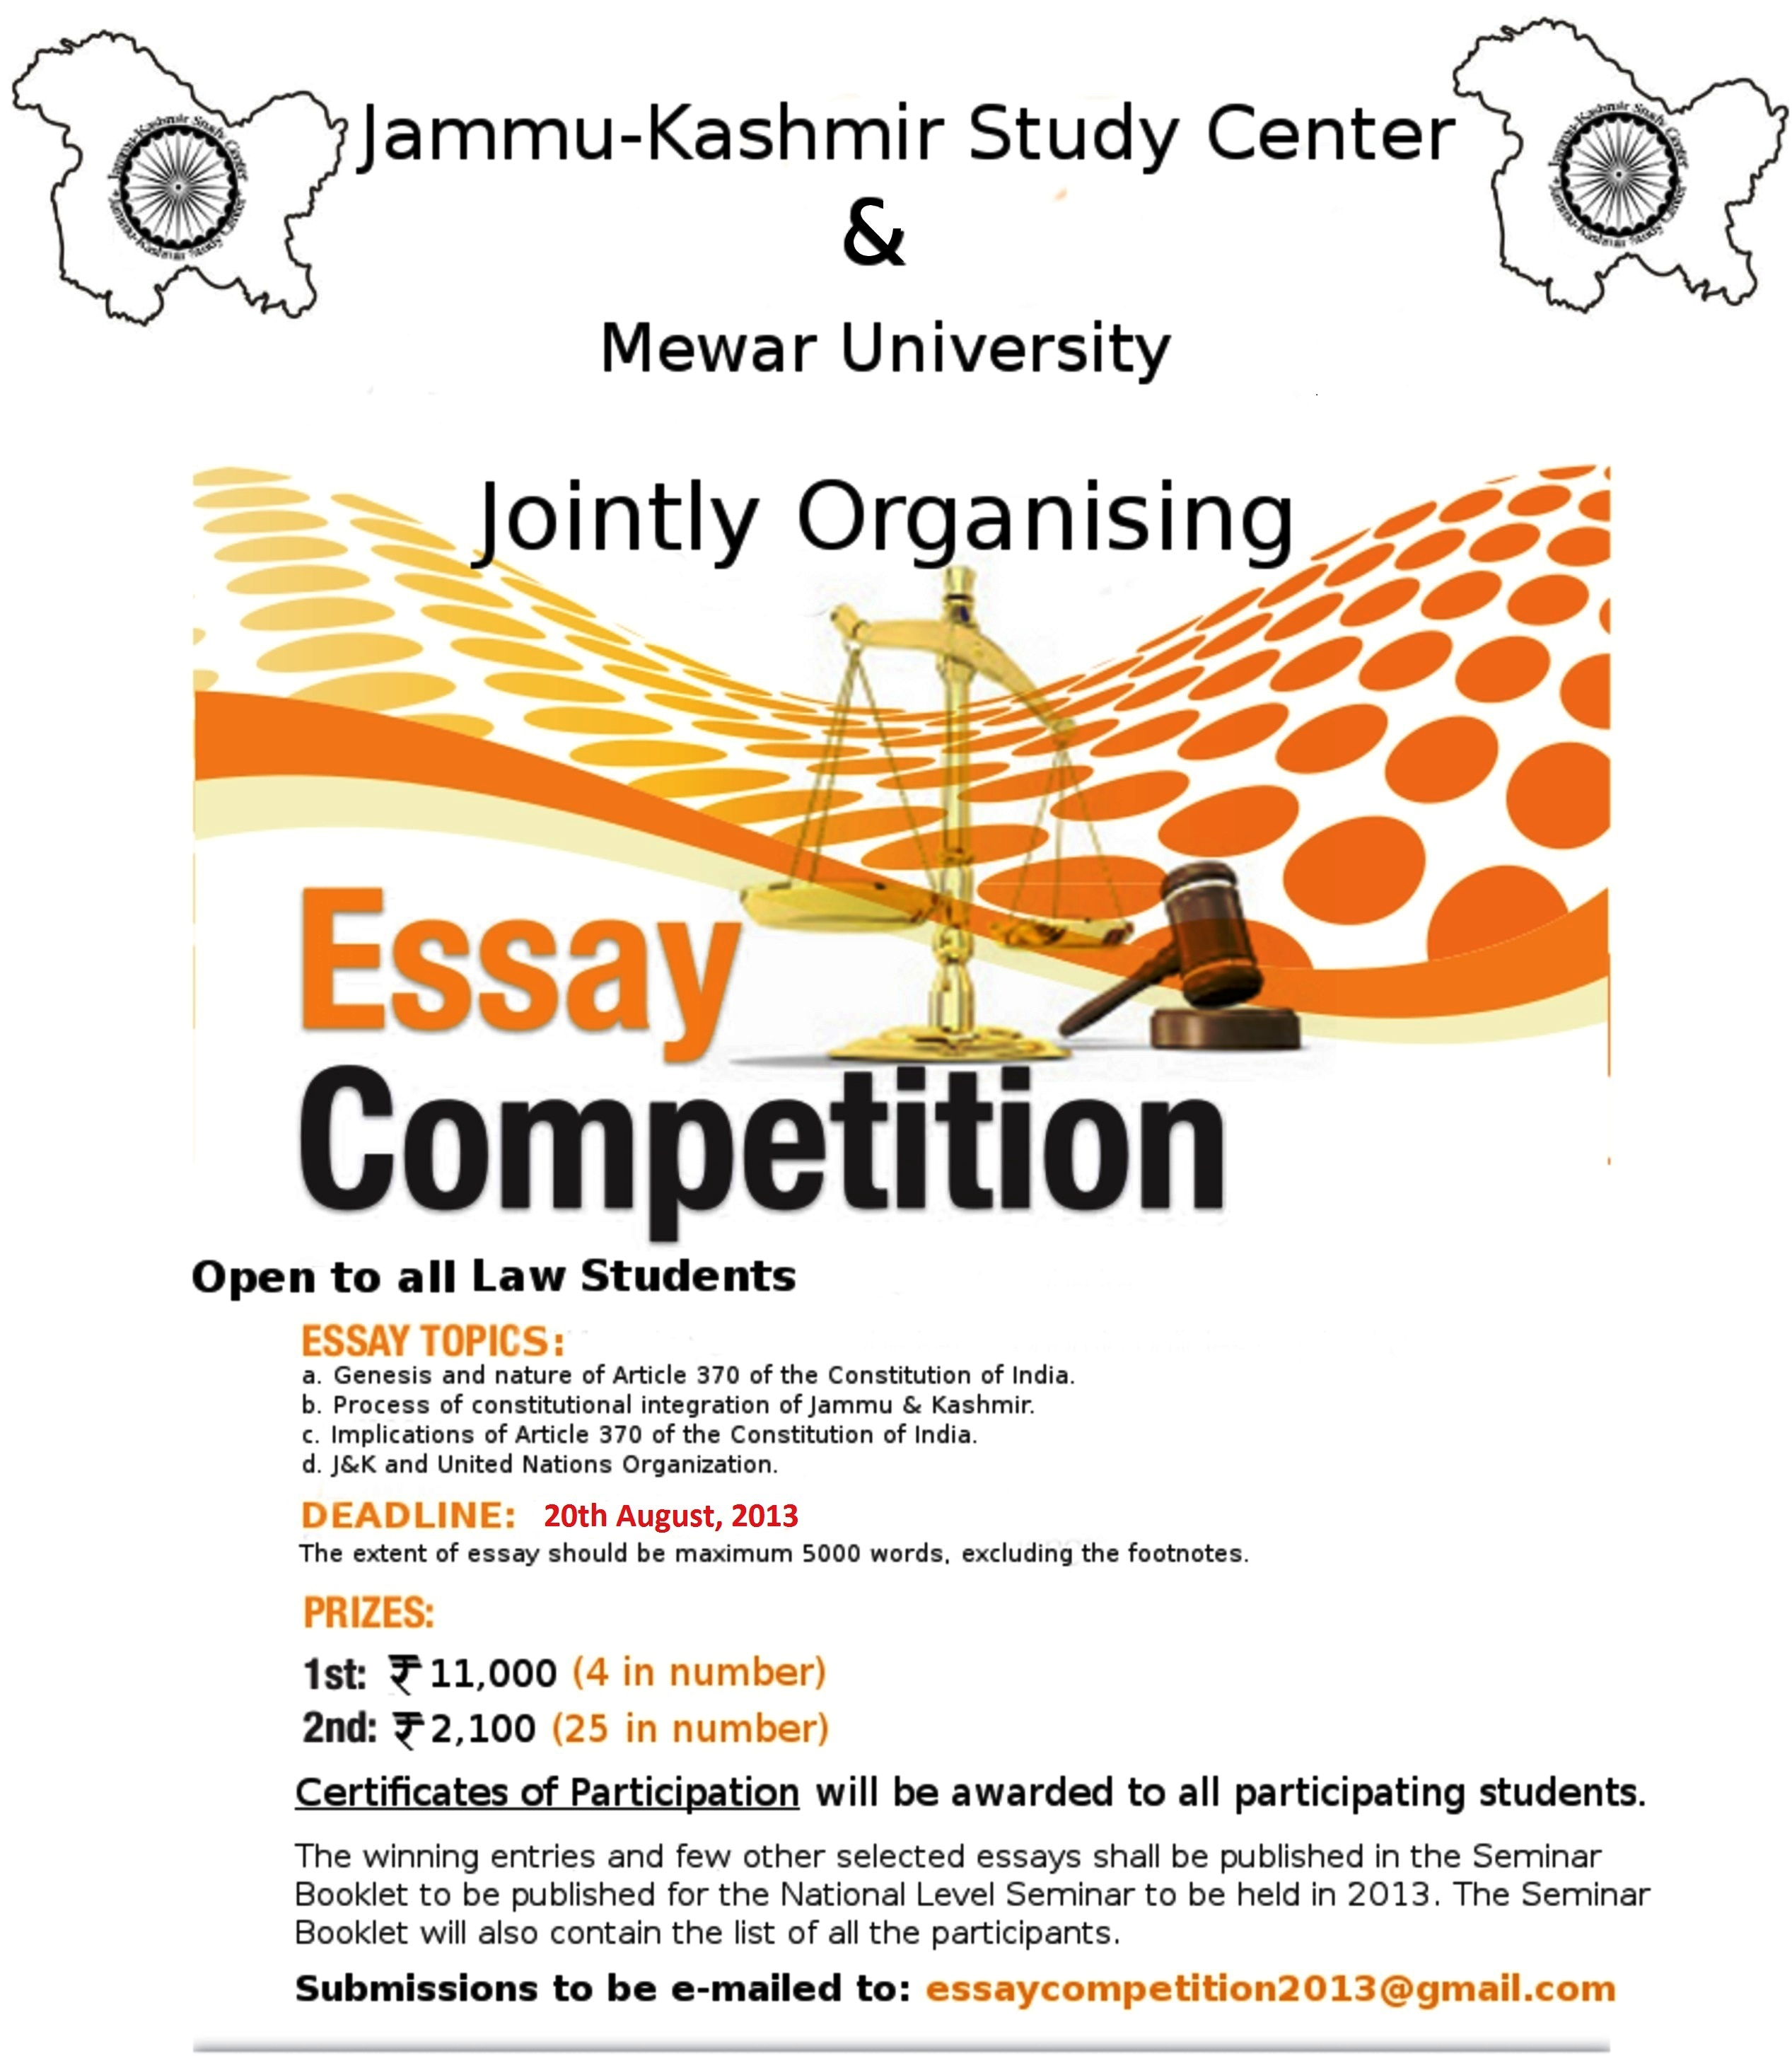 Essay writing competition notice